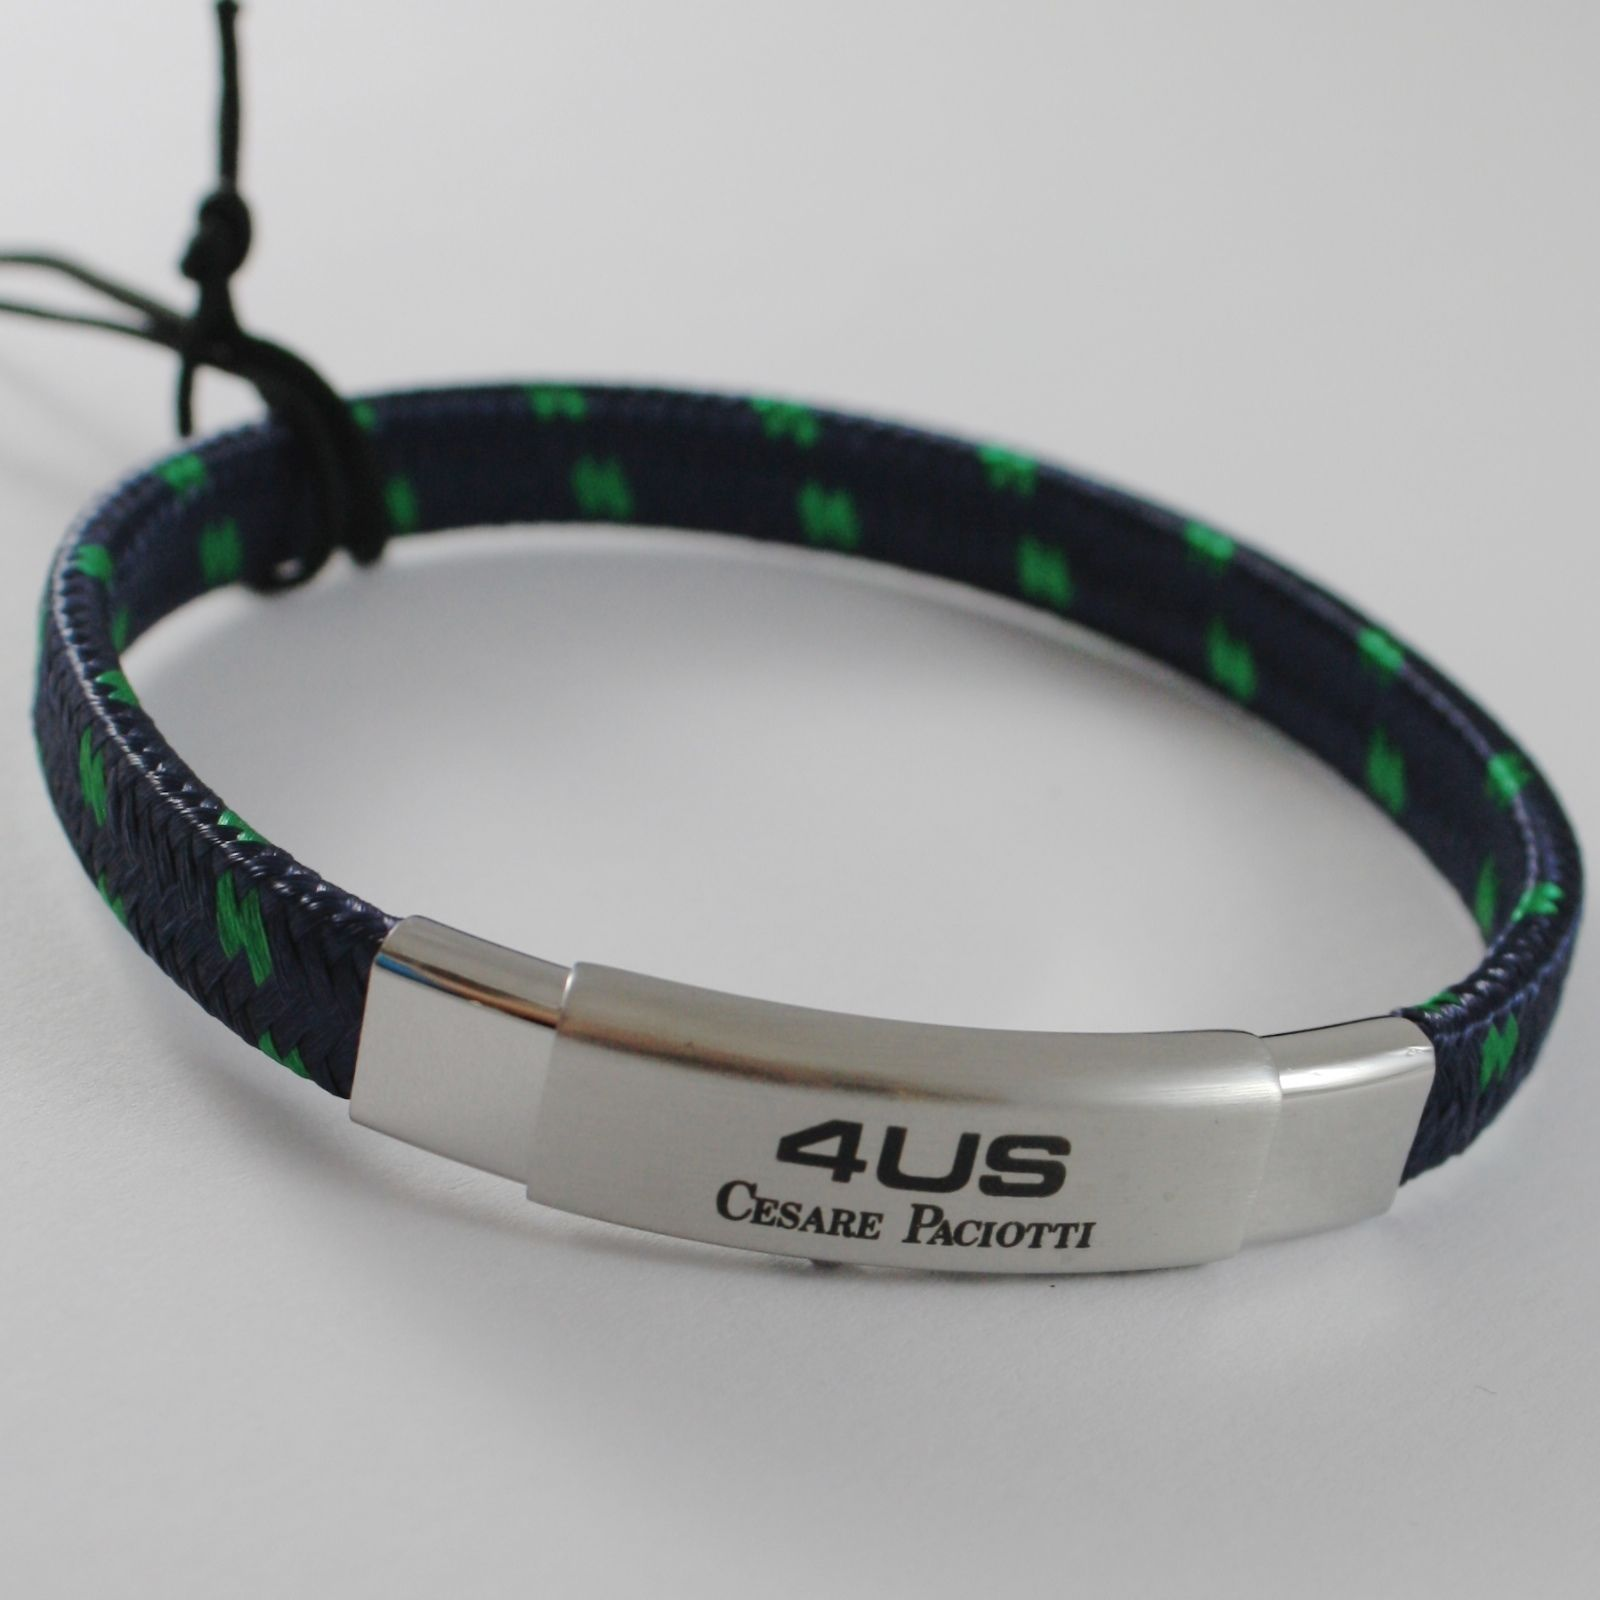 STAINLESS STEEL BRACELET BLUE AND GREEN WOVEN FABRIC, 4US BY CESARE PACIOTTI